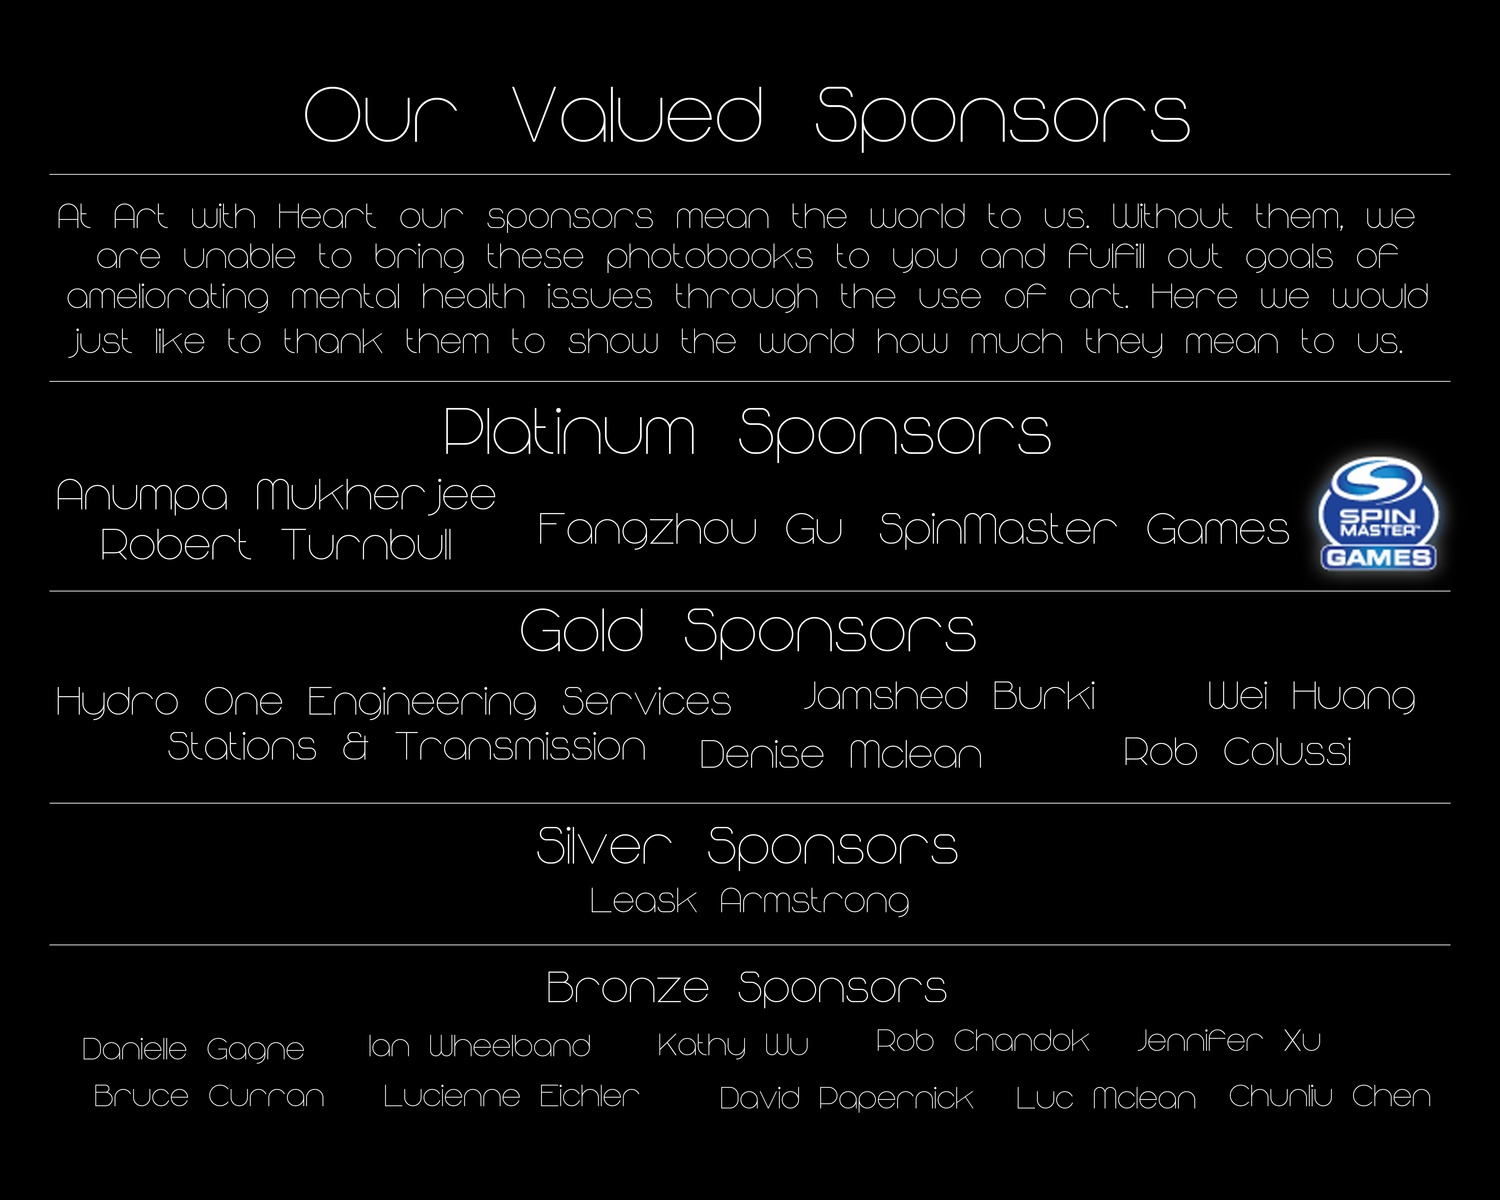 Thank you so much to all the sponsors who helped us reach our goal!